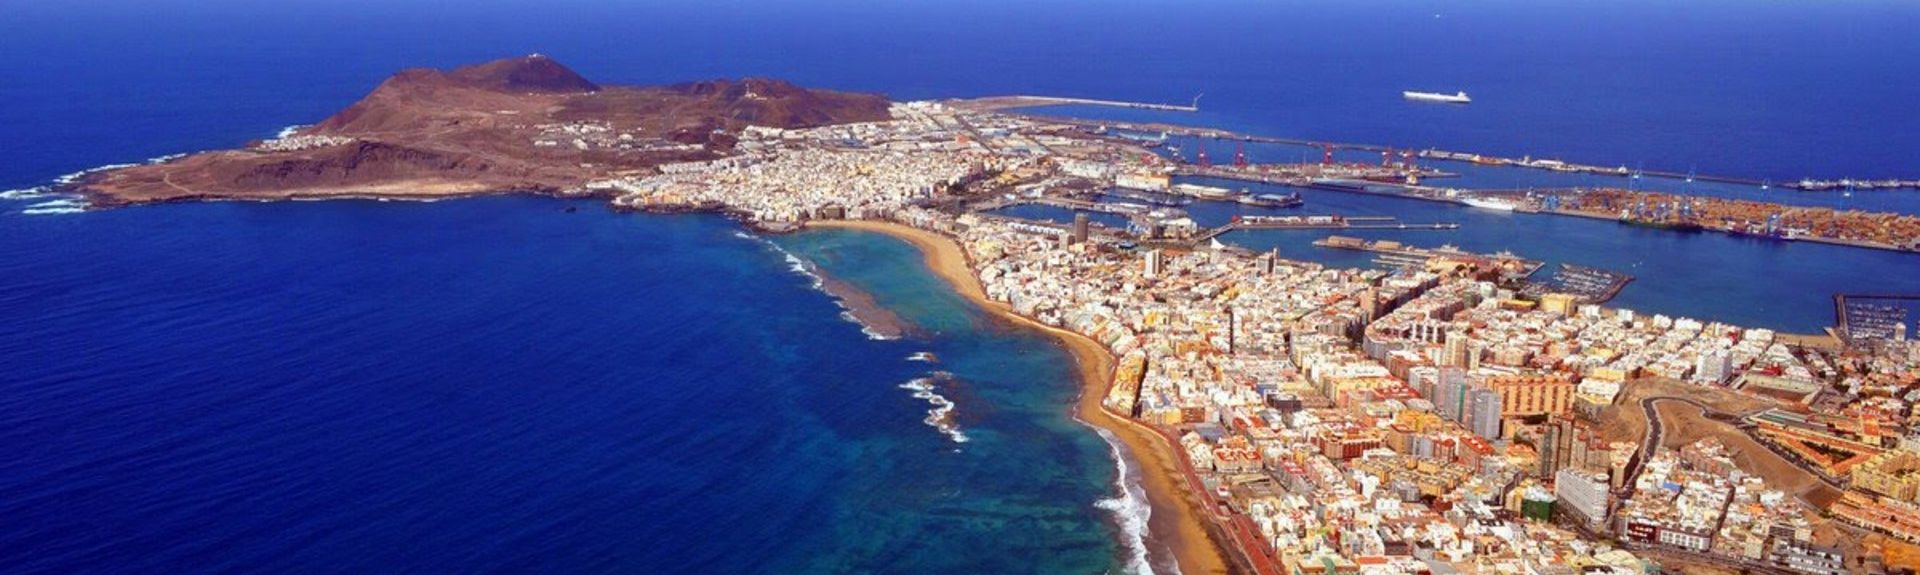 Firgas, Canary Islands, Spain